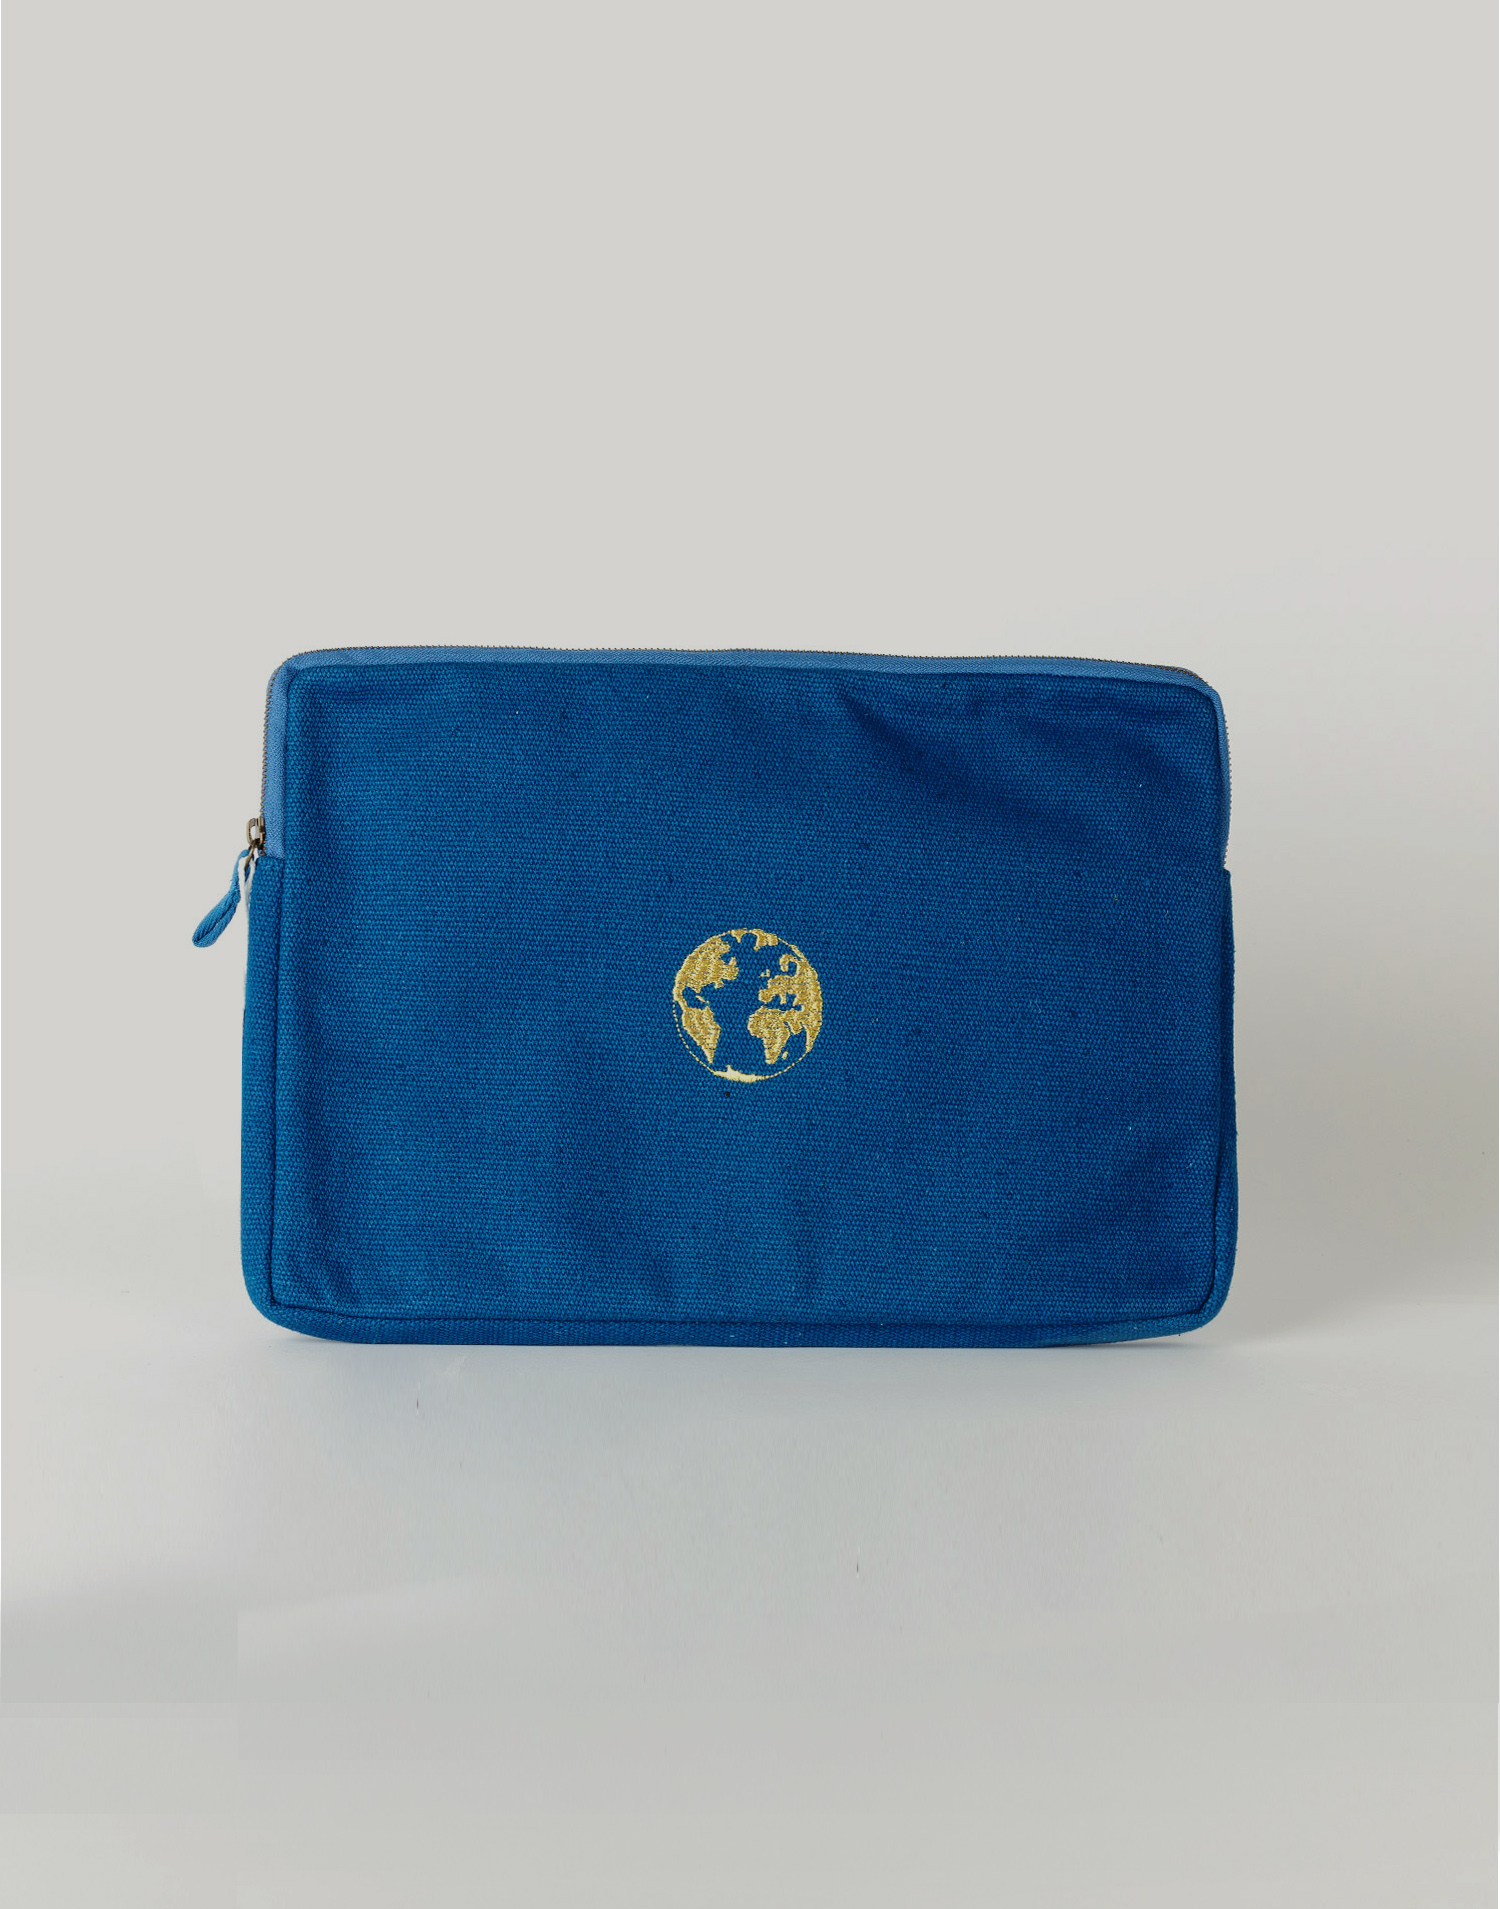 Funda ordenador canvas 15""